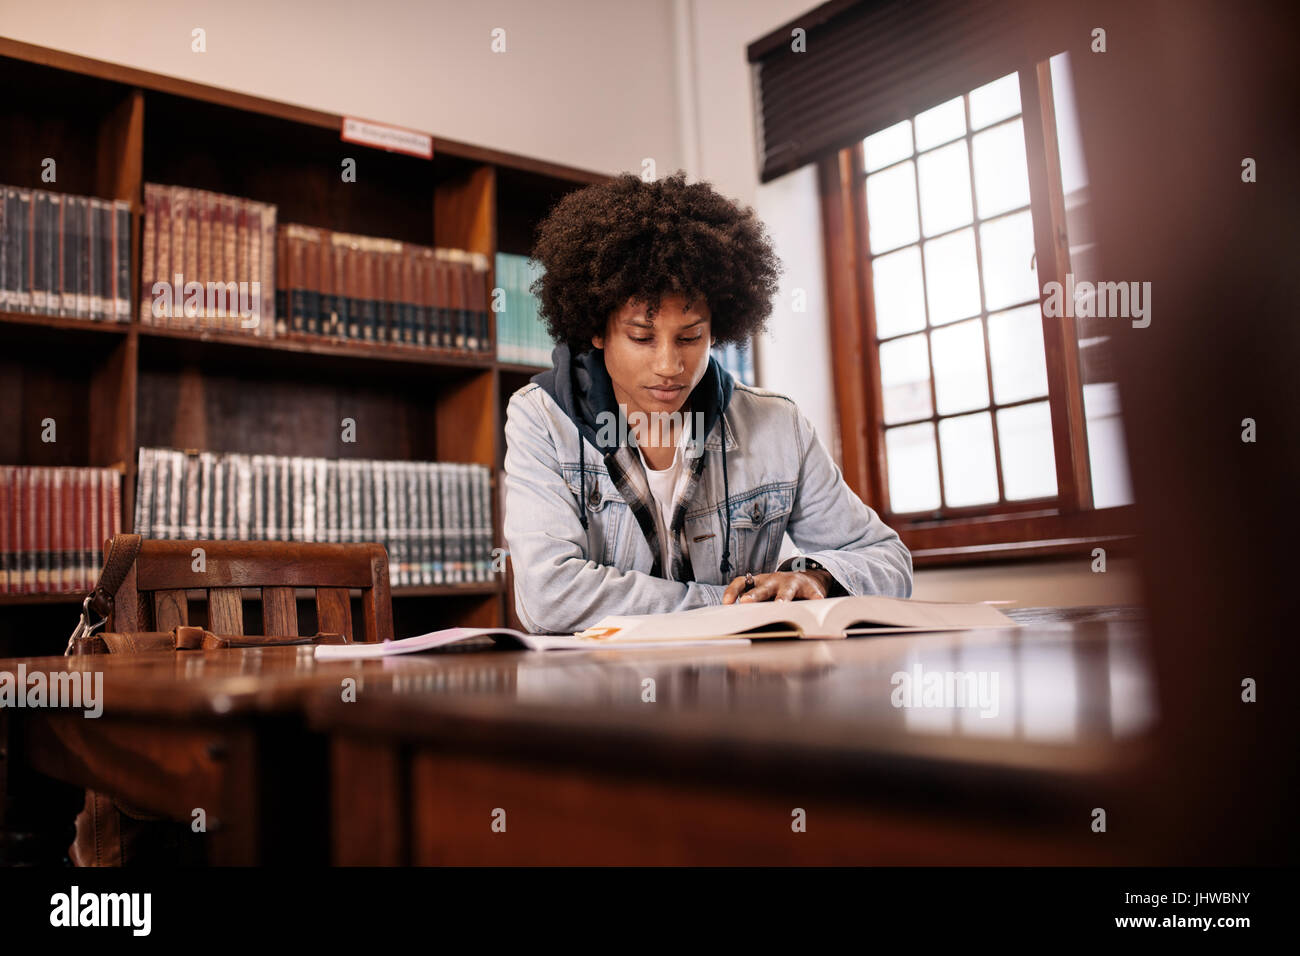 African college student reading book in library. Young student sitting at table in library and studying. - Stock Image